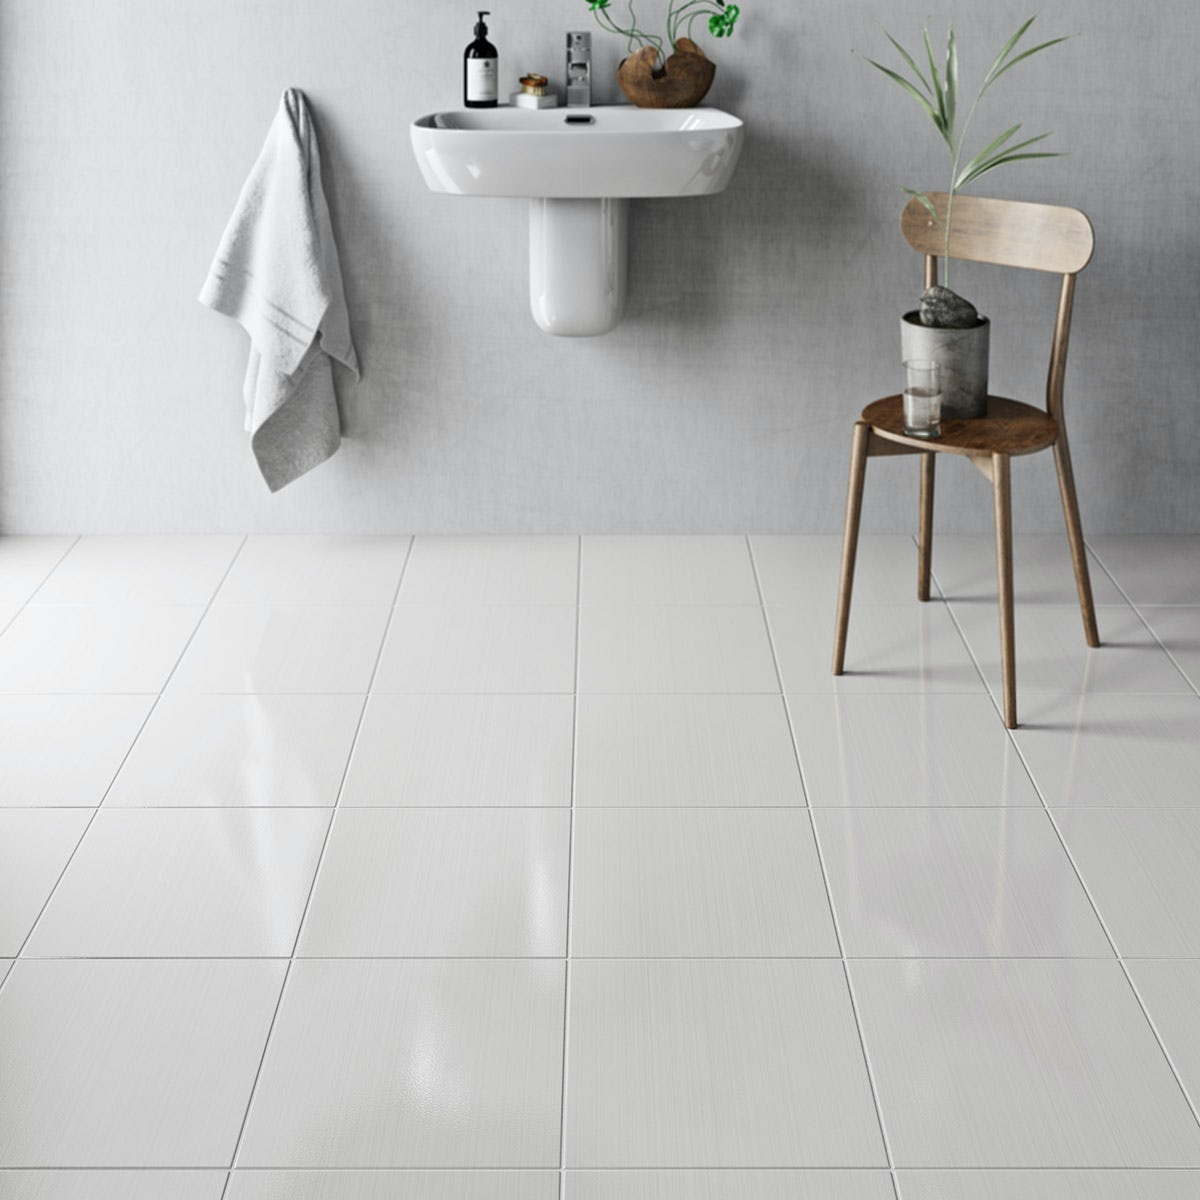 British ceramic tile linear white gloss tile 331mm x 331mm british ceramic tile linear white gloss tile 331mm x 331mm doublecrazyfo Image collections